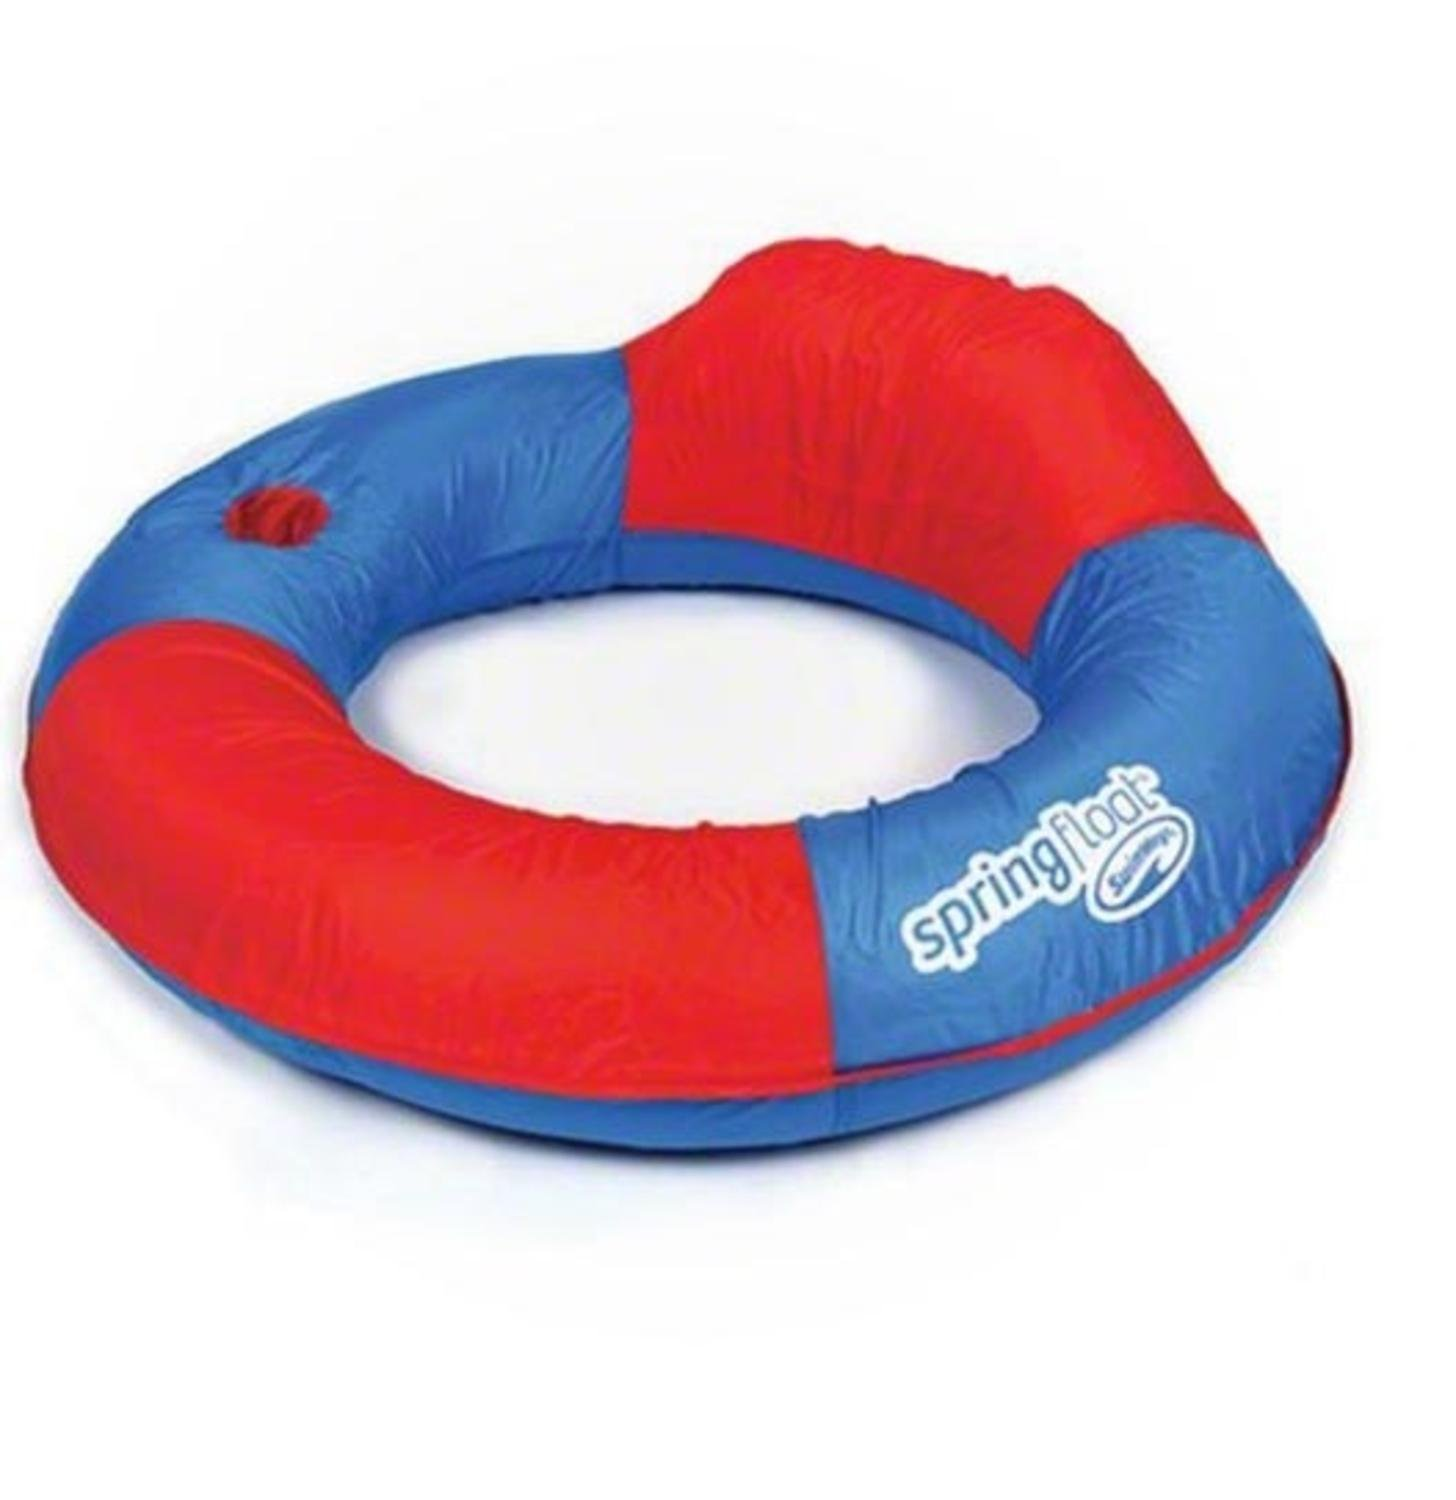 Swimway 36'' Red and Blue Swimming Pool Inflatable Sun Tube Lounger Spring Float with Cup Holder by Swimway (Image #2)